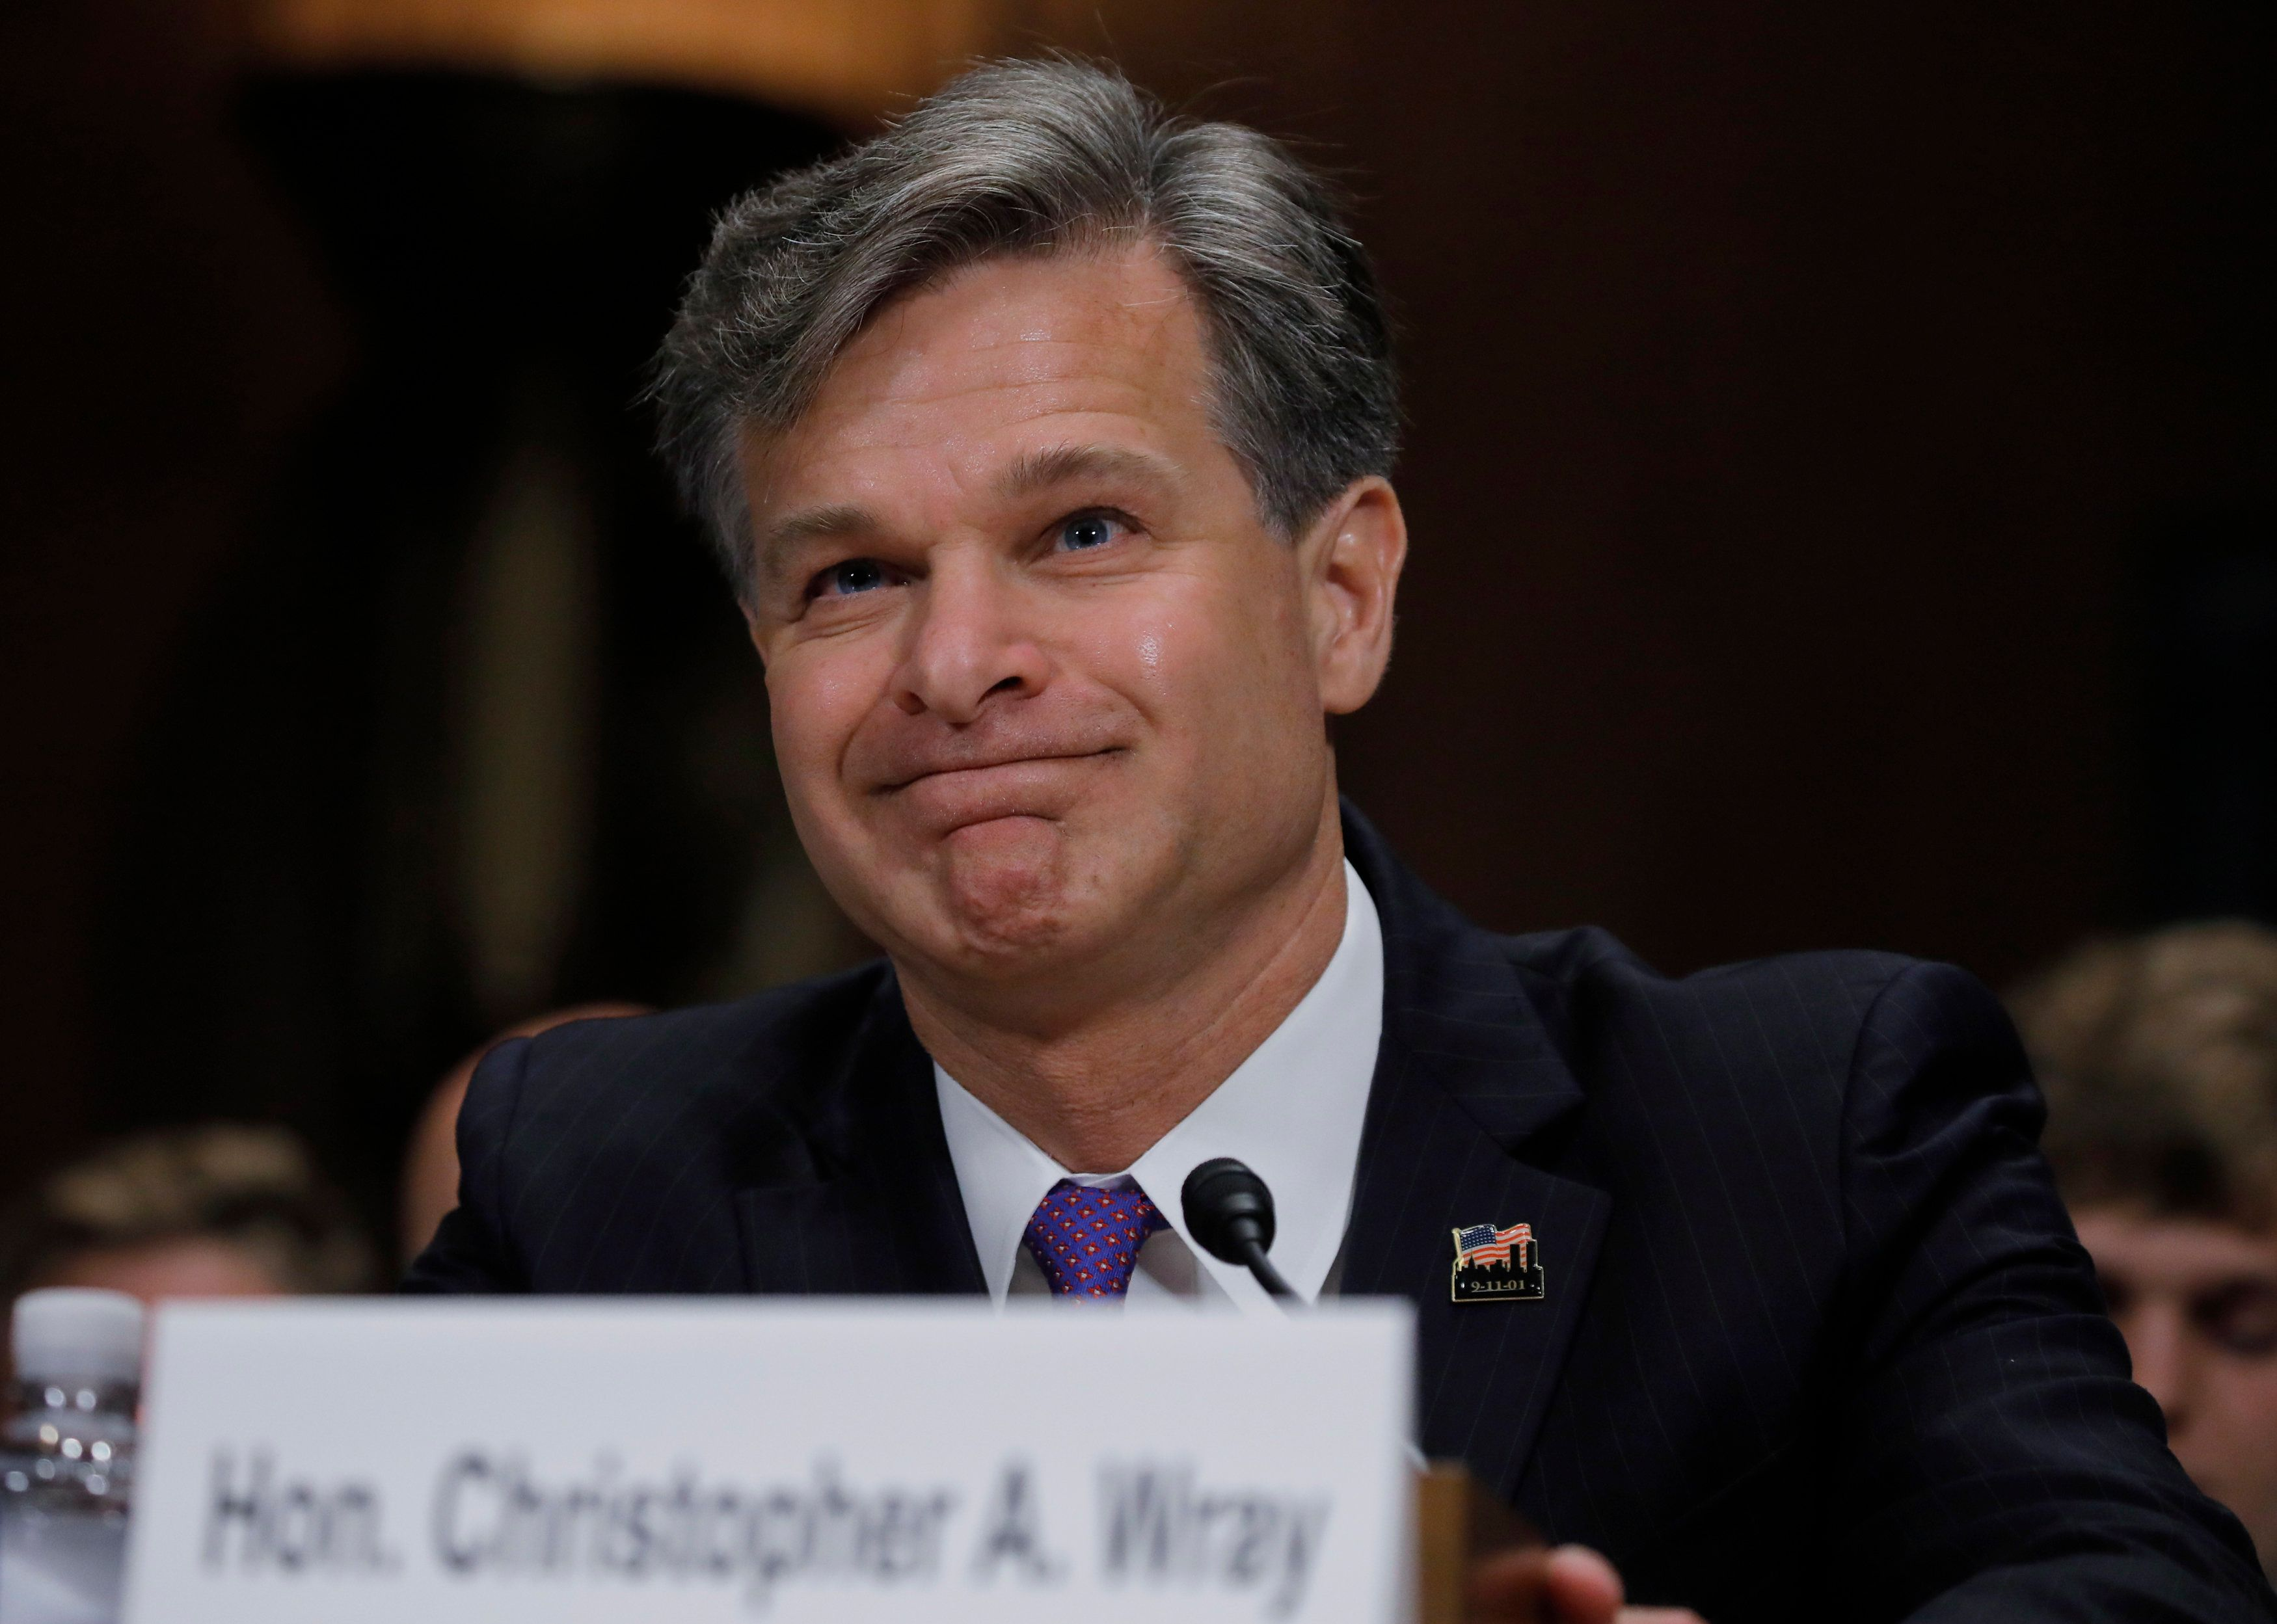 Christopher Wray is seated prior to testifying before a Senate Judiciary Committee confirmation hearing on his nomination to be the next FBI director on Capitol Hill in Washington, U.S., July 12, 2017. REUTERS/Carlos Barria